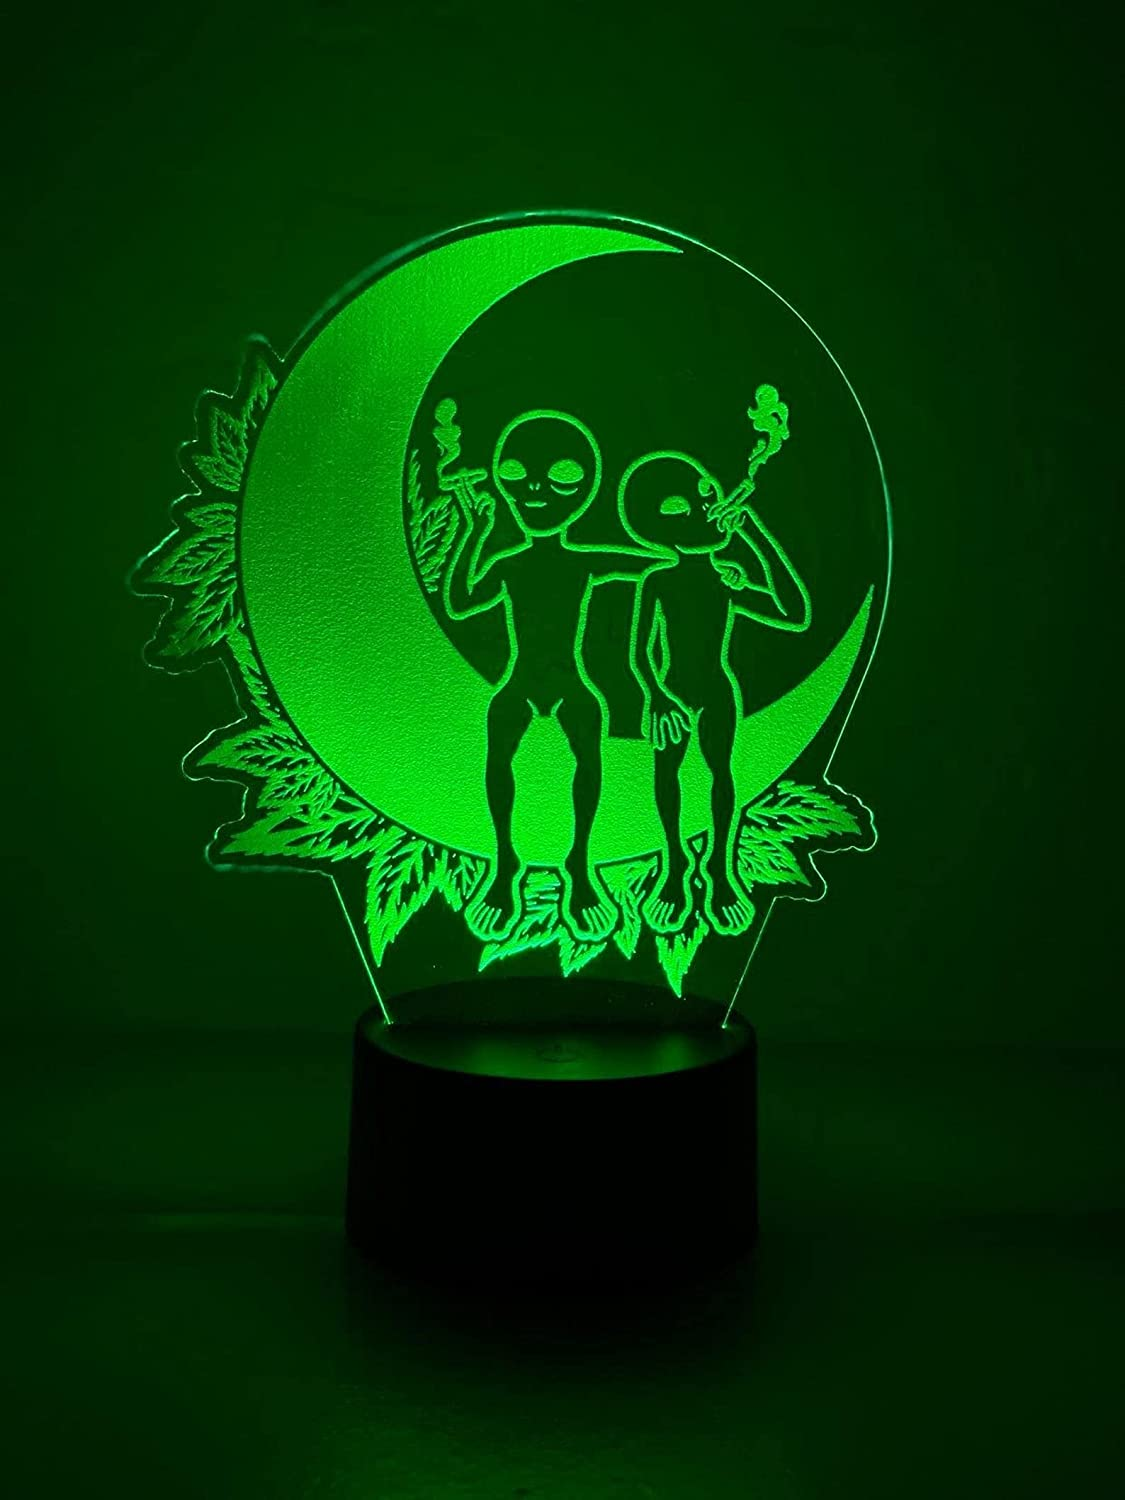 Free shipping anywhere Raleigh Mall in the nation Marijuana Leaf 3D LED Table Lamp Cannabis Weed Night Optic Light